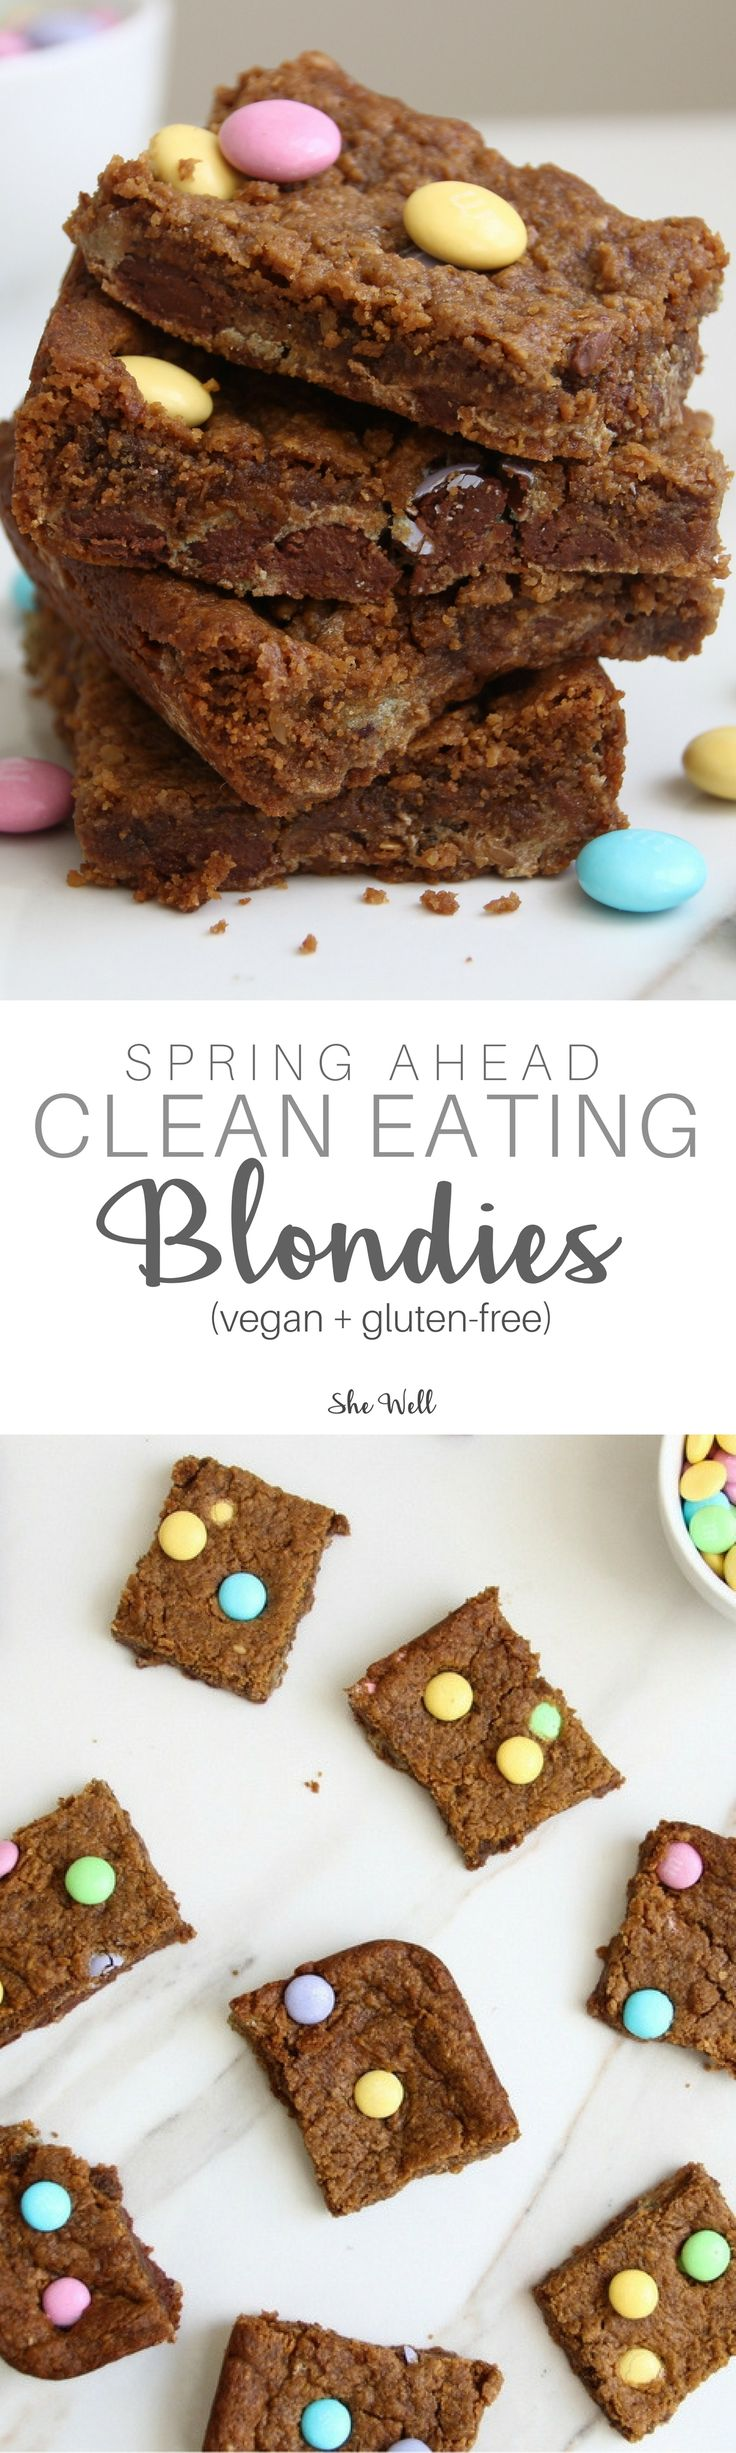 This recipe is a healthy take on blondies! They make a great easter or spring dessert and are perfect for people who are vegan, gluten-free, dairy-free or egg-free!